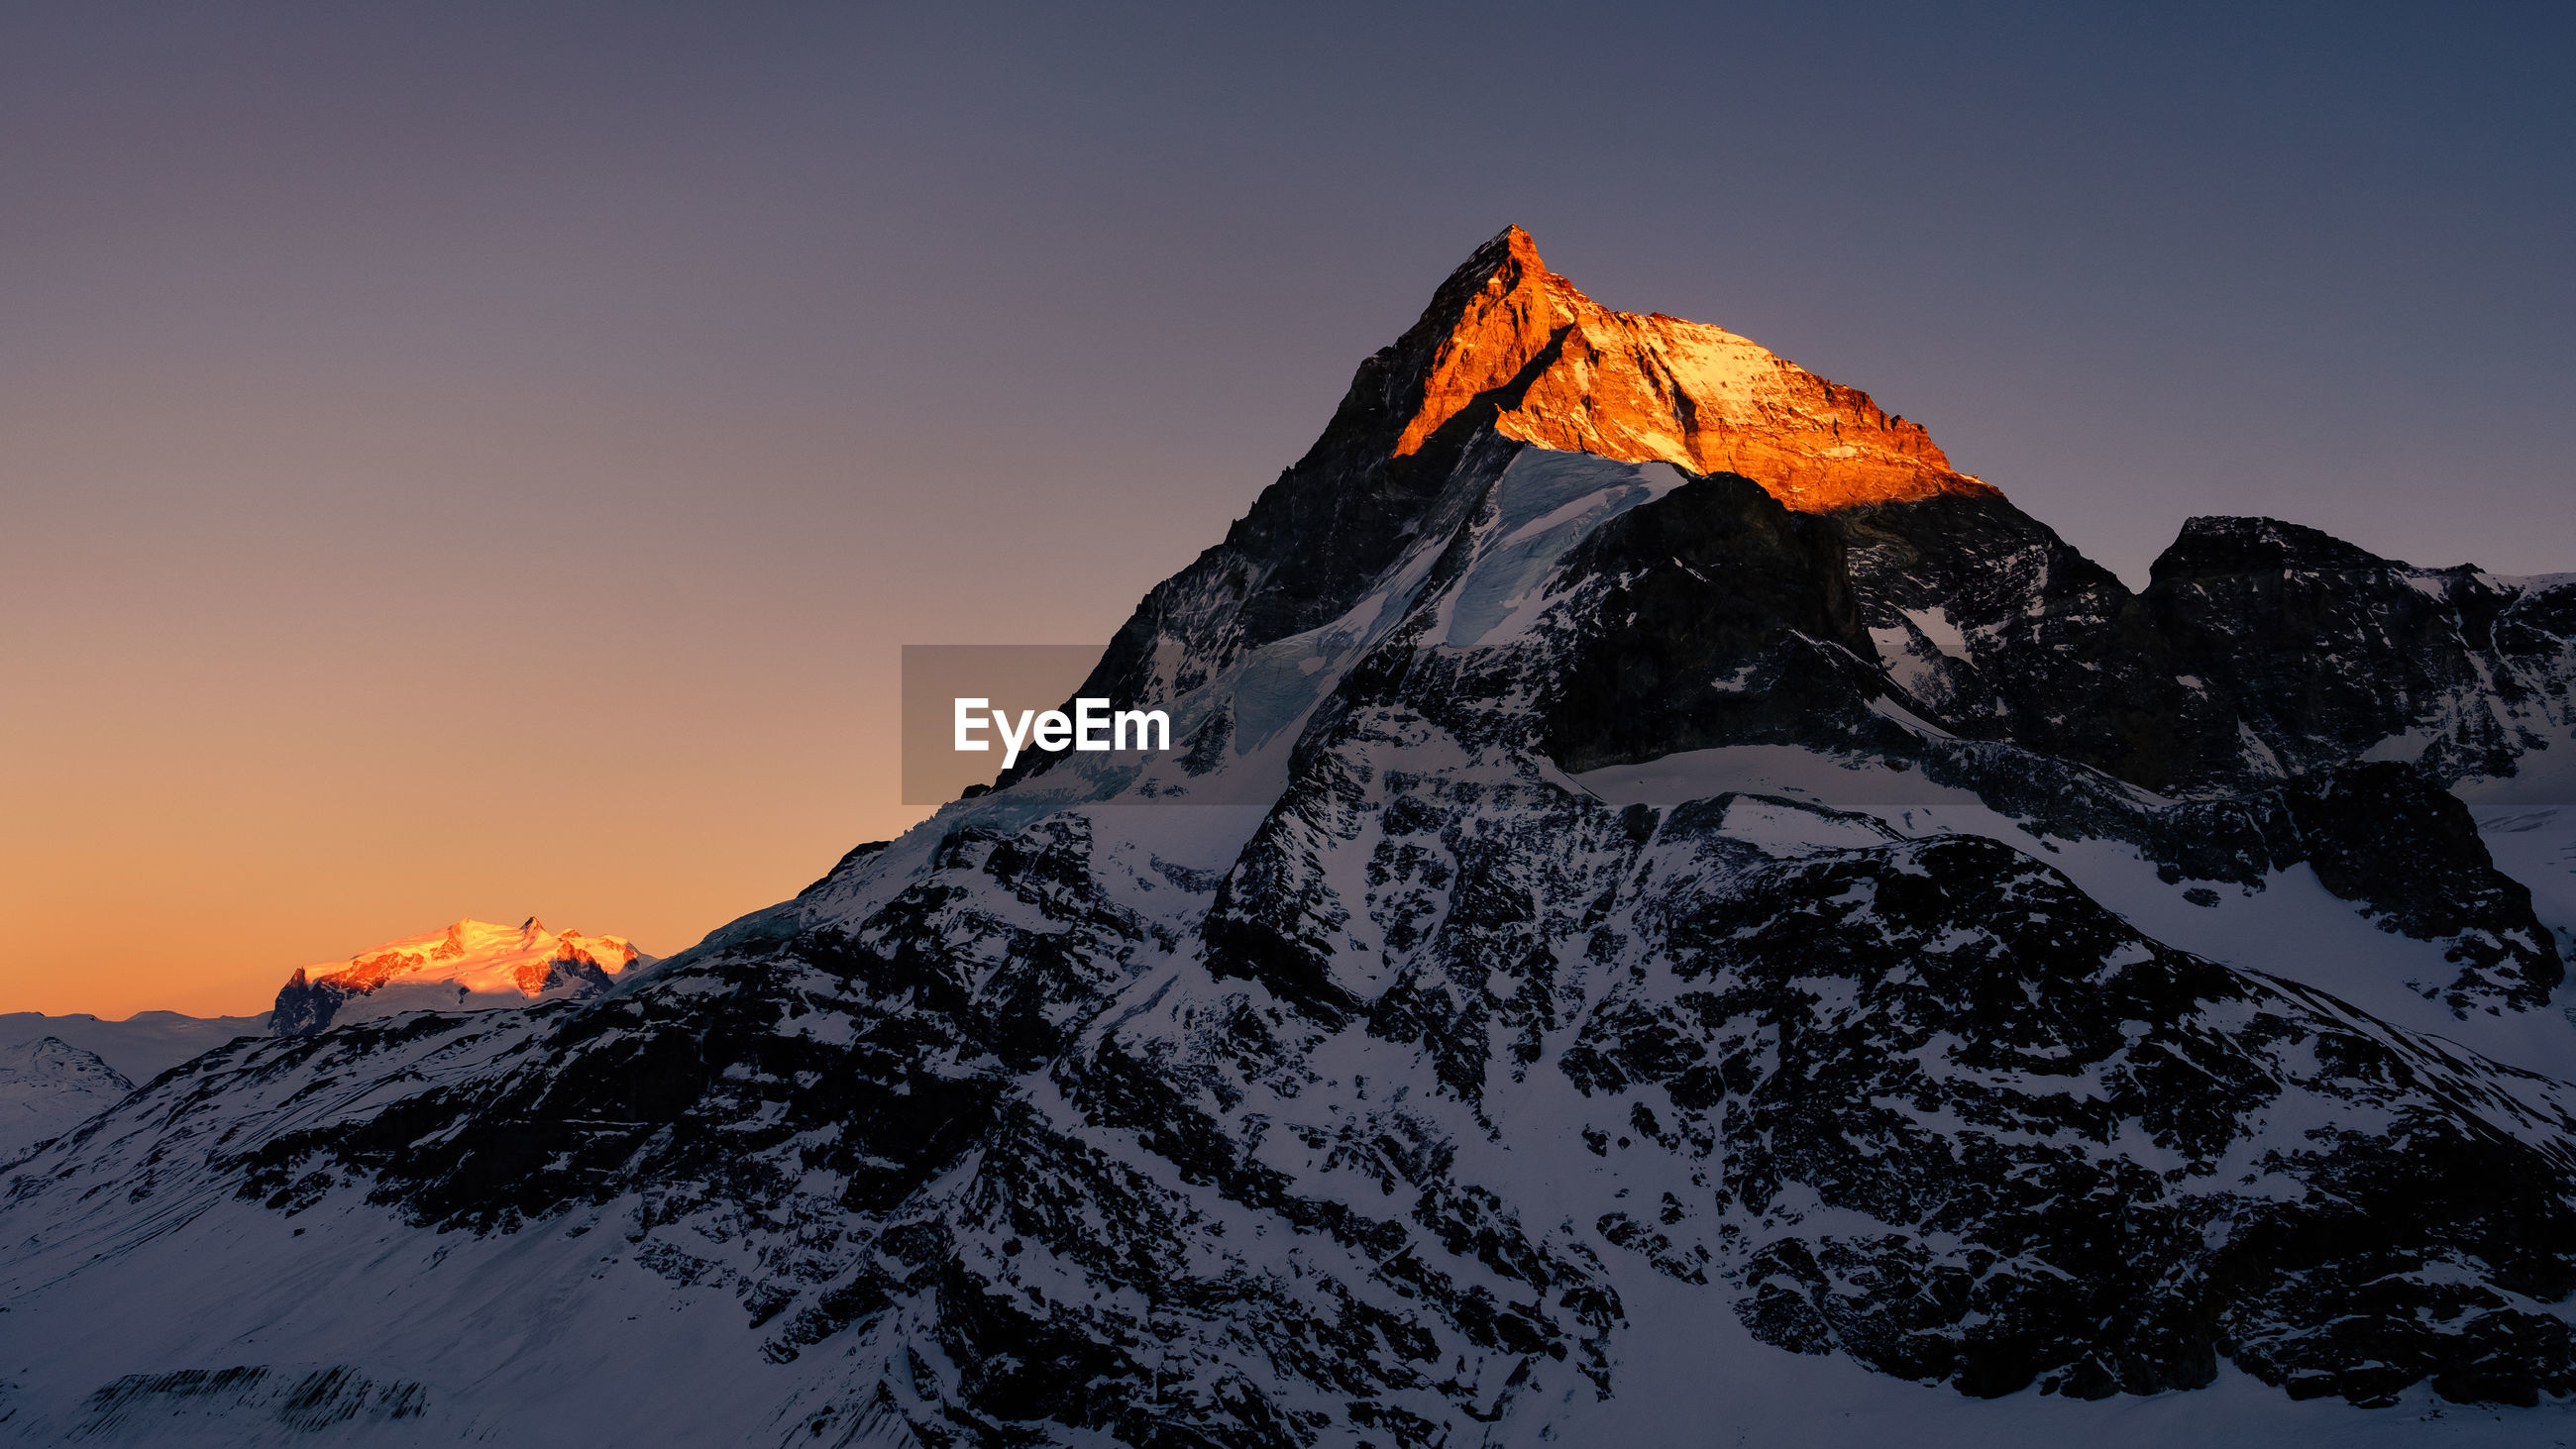 SNOWCAPPED MOUNTAIN AGAINST SKY DURING SUNSET